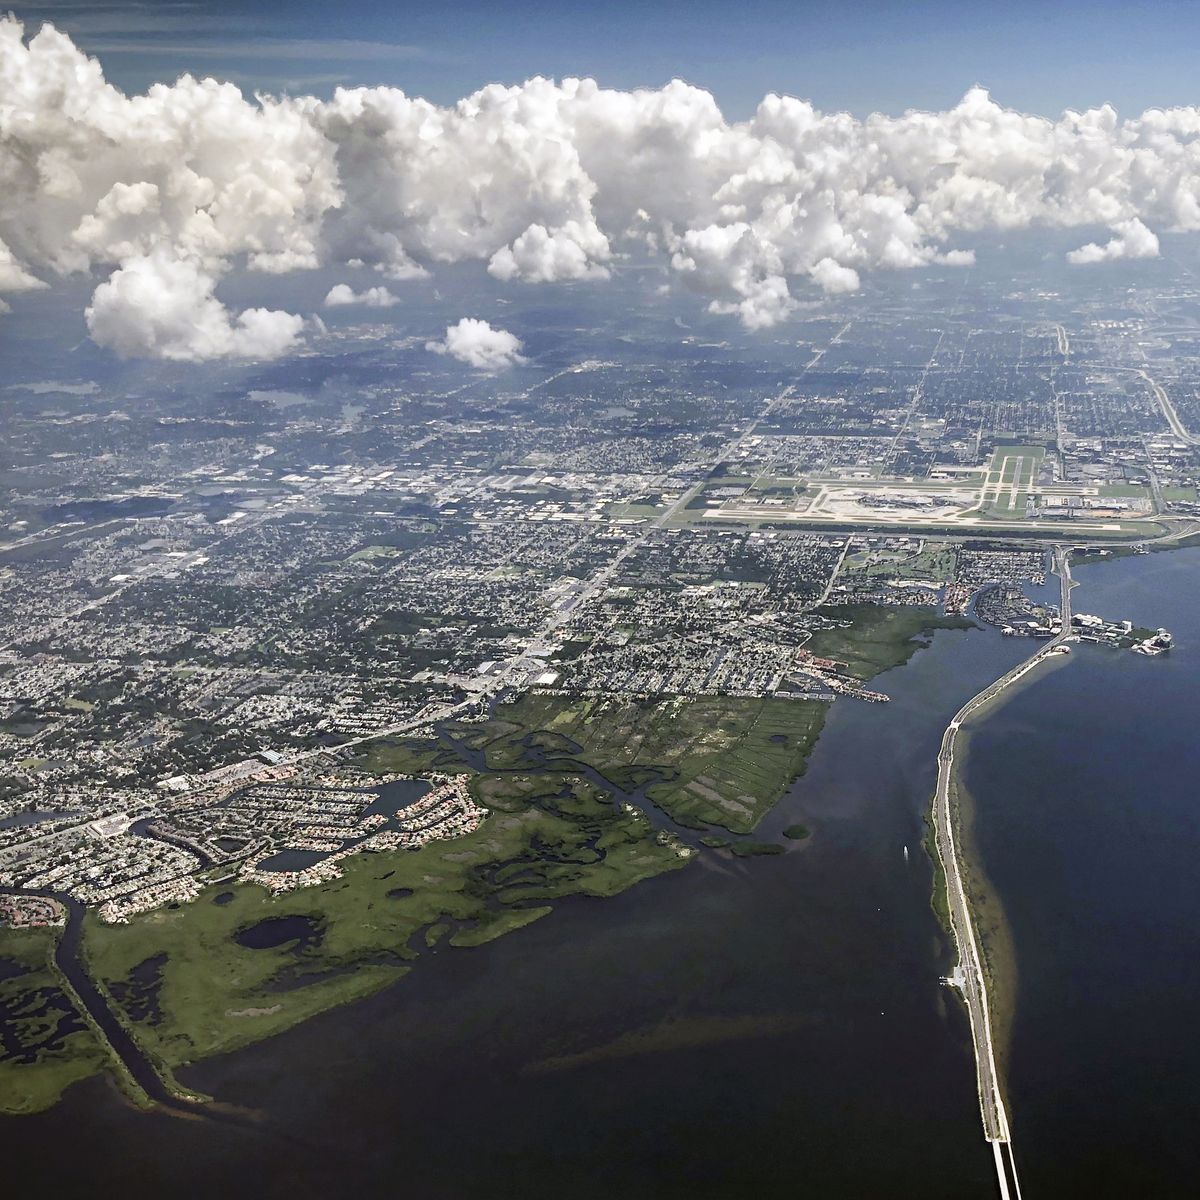 An aerial view of a portion of the Tampa Bay area.